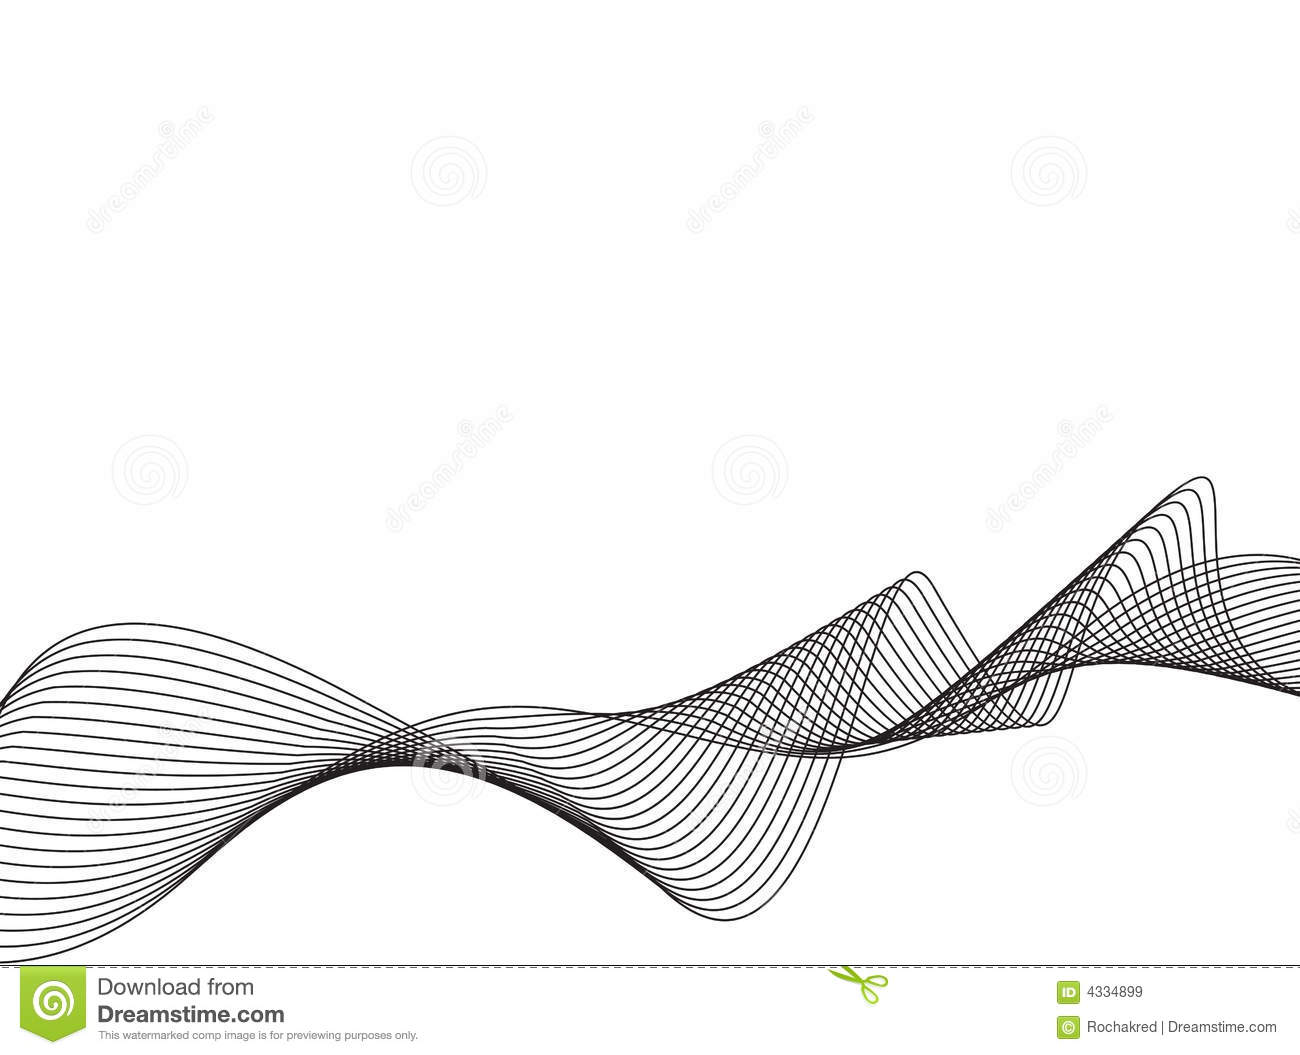 Drawing Vector Lines : Vector line art waves stock illustration of retro